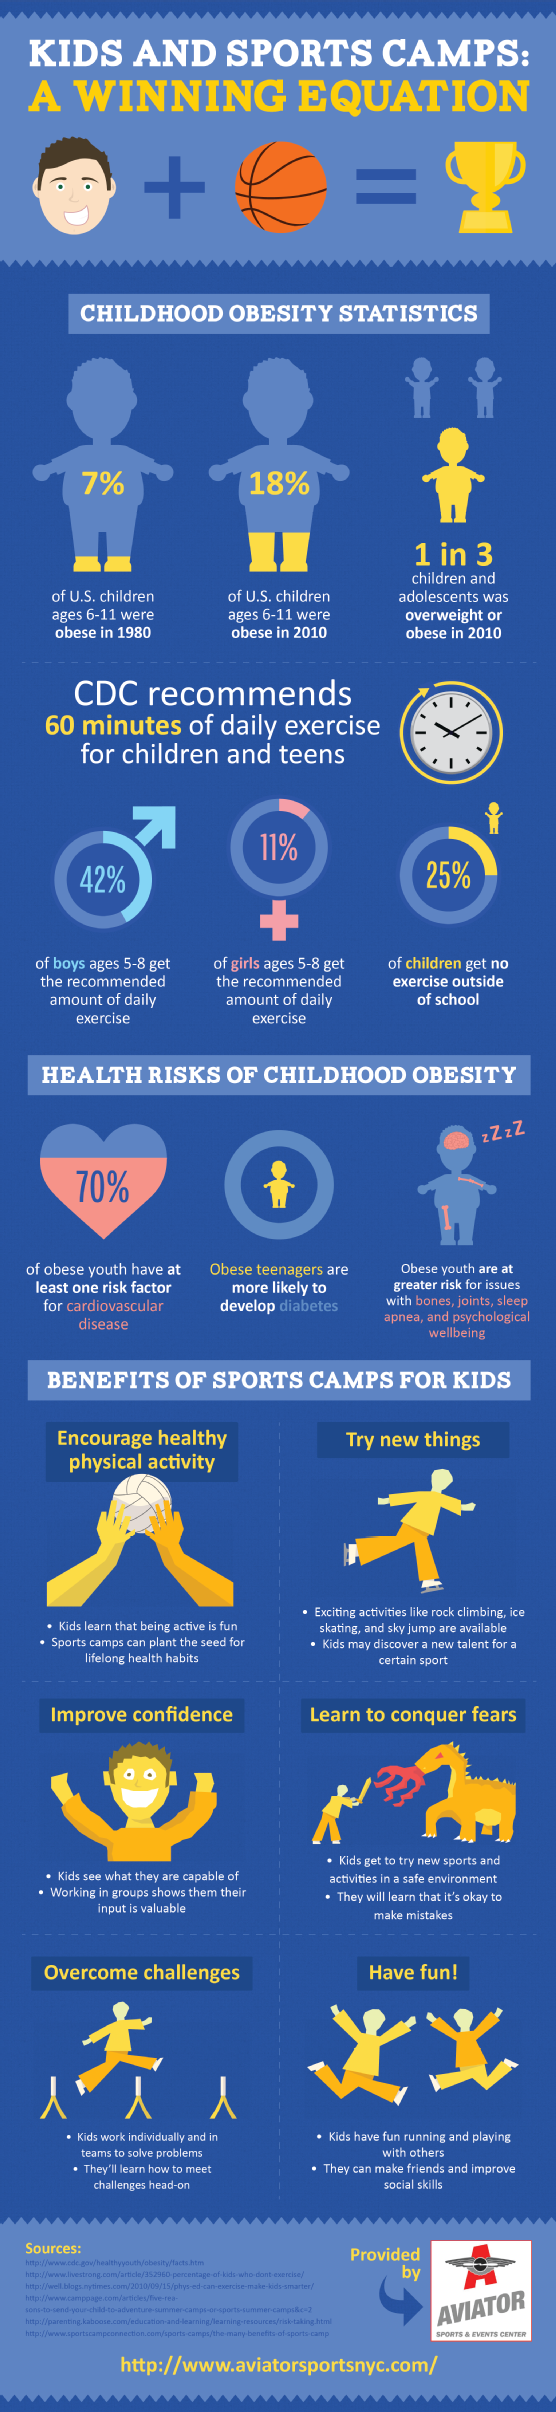 Kids and Sport Camps